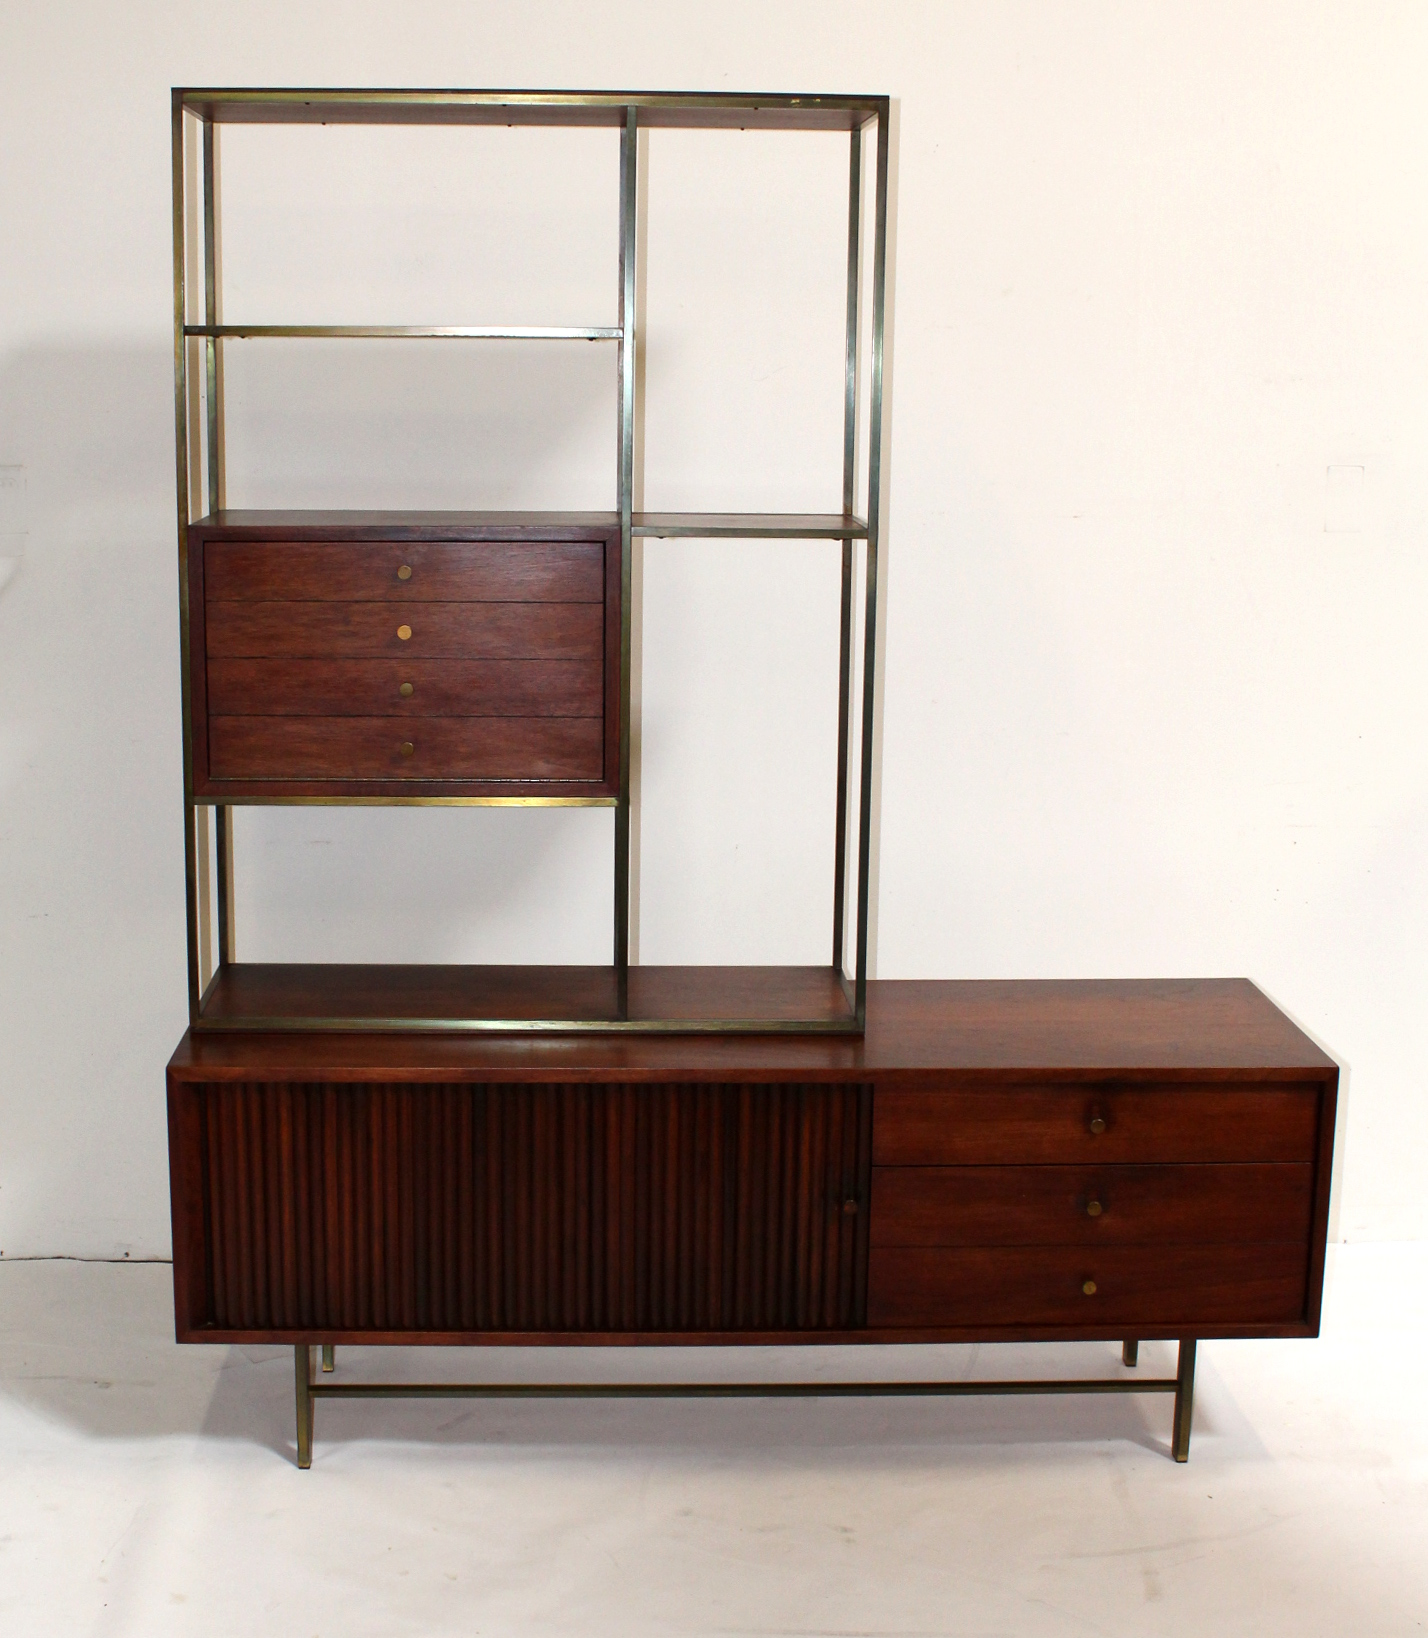 Mid Century Modern Room Divider Wooden Room Dividers for Sale